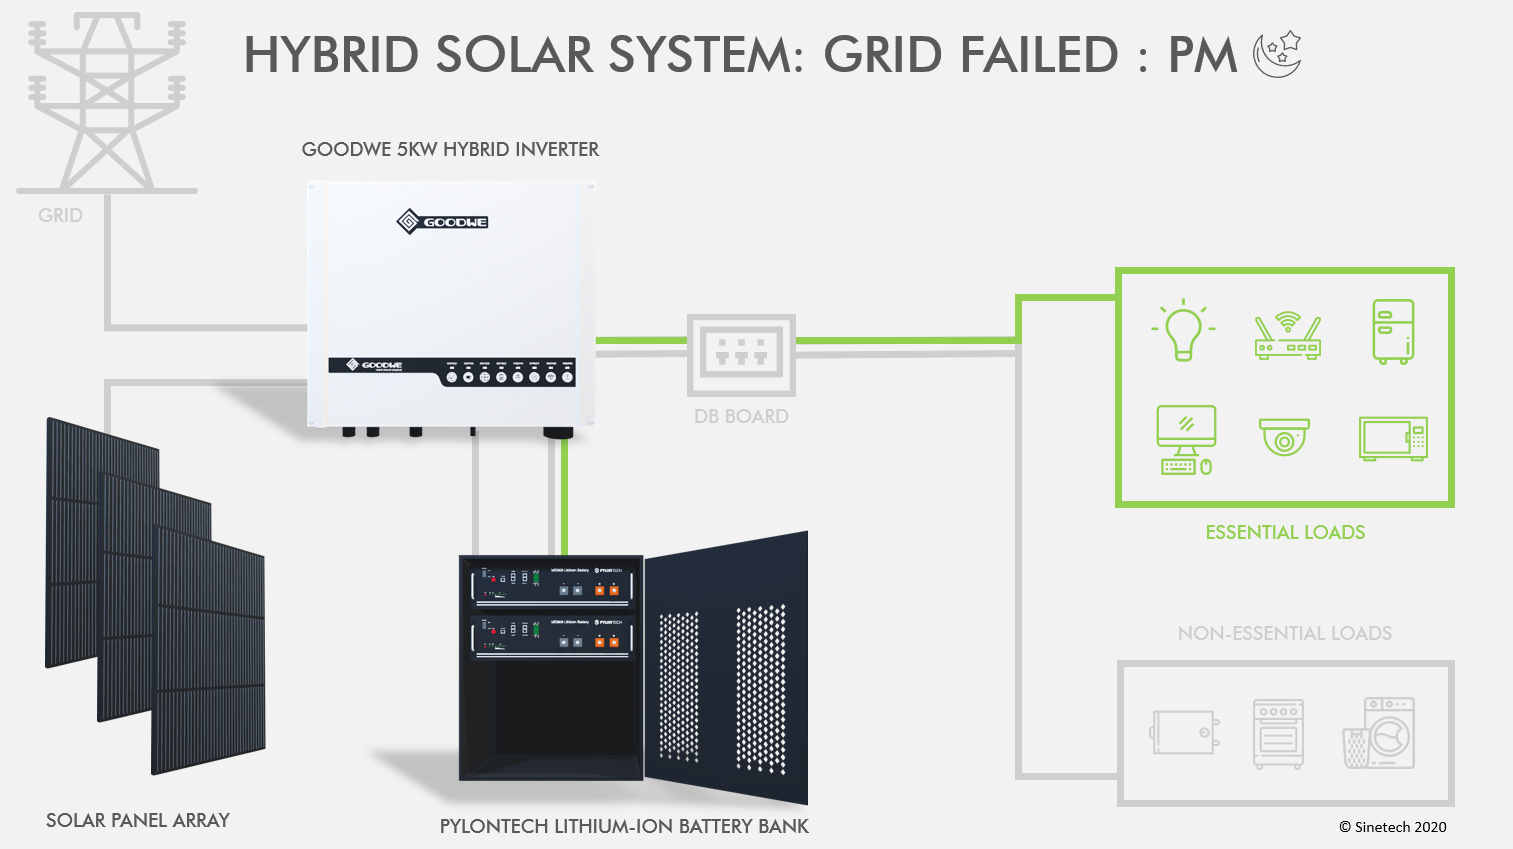 Hybrid Solar System - Grid Failed - PM